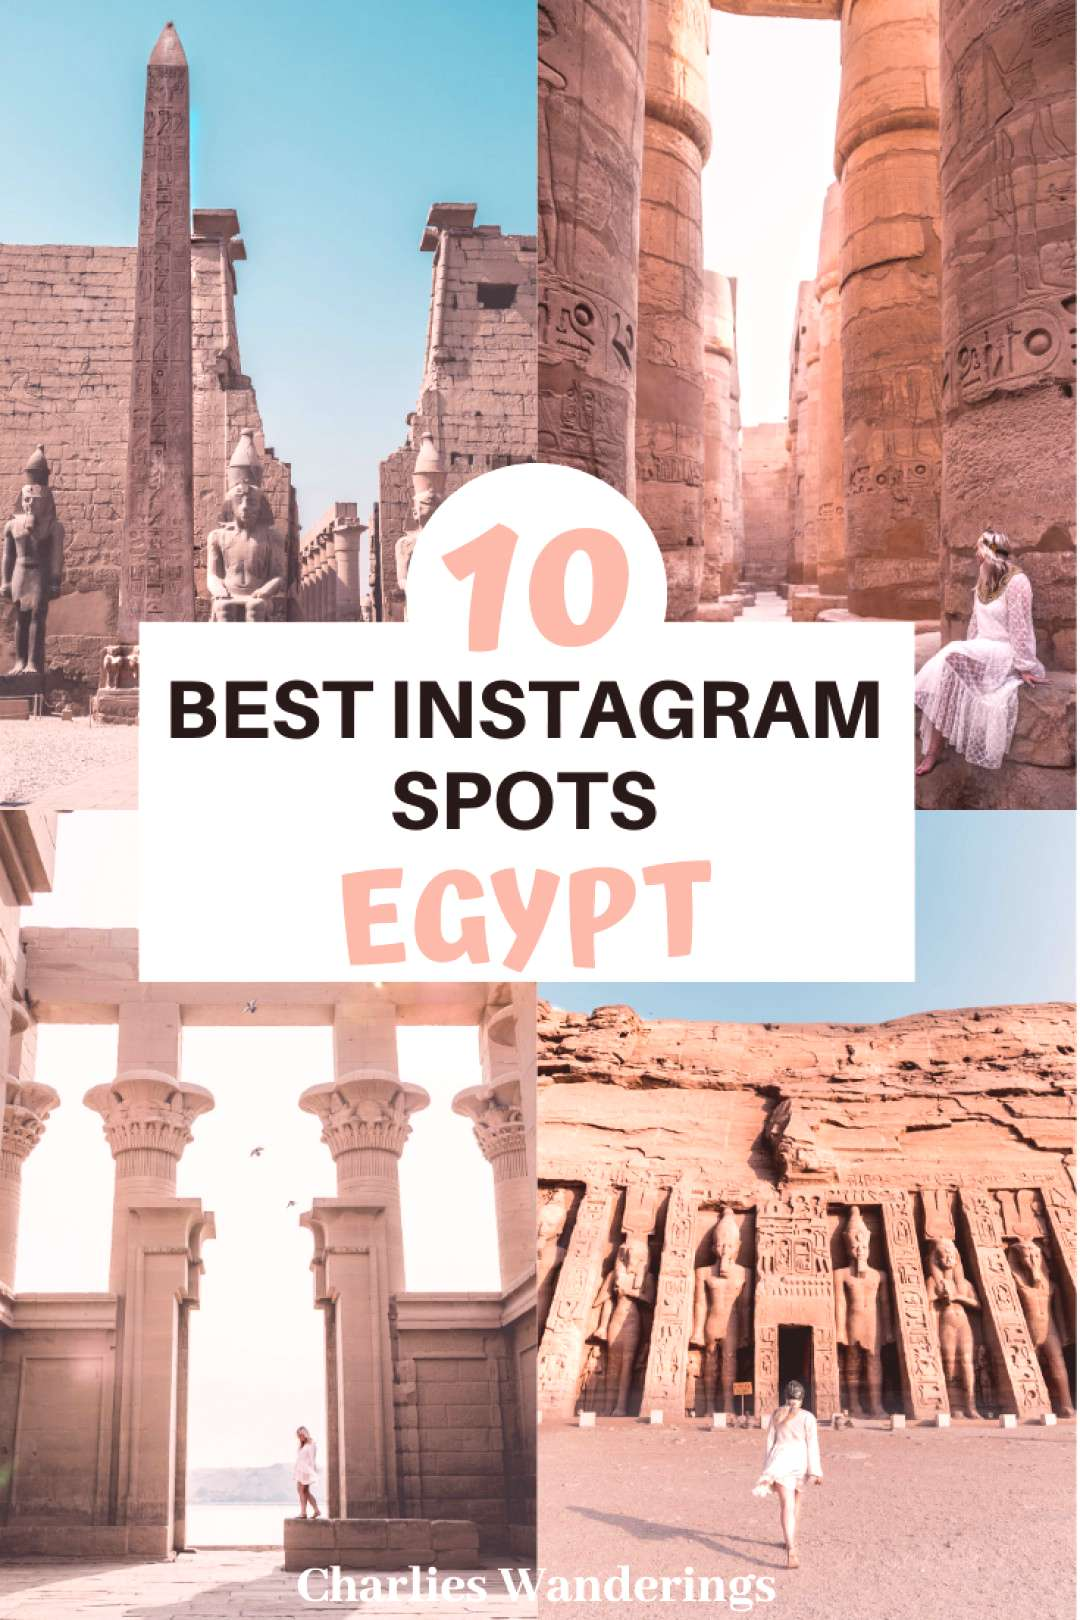 The Most Instagrammable places in Egypt - Charlies Wanderings - -